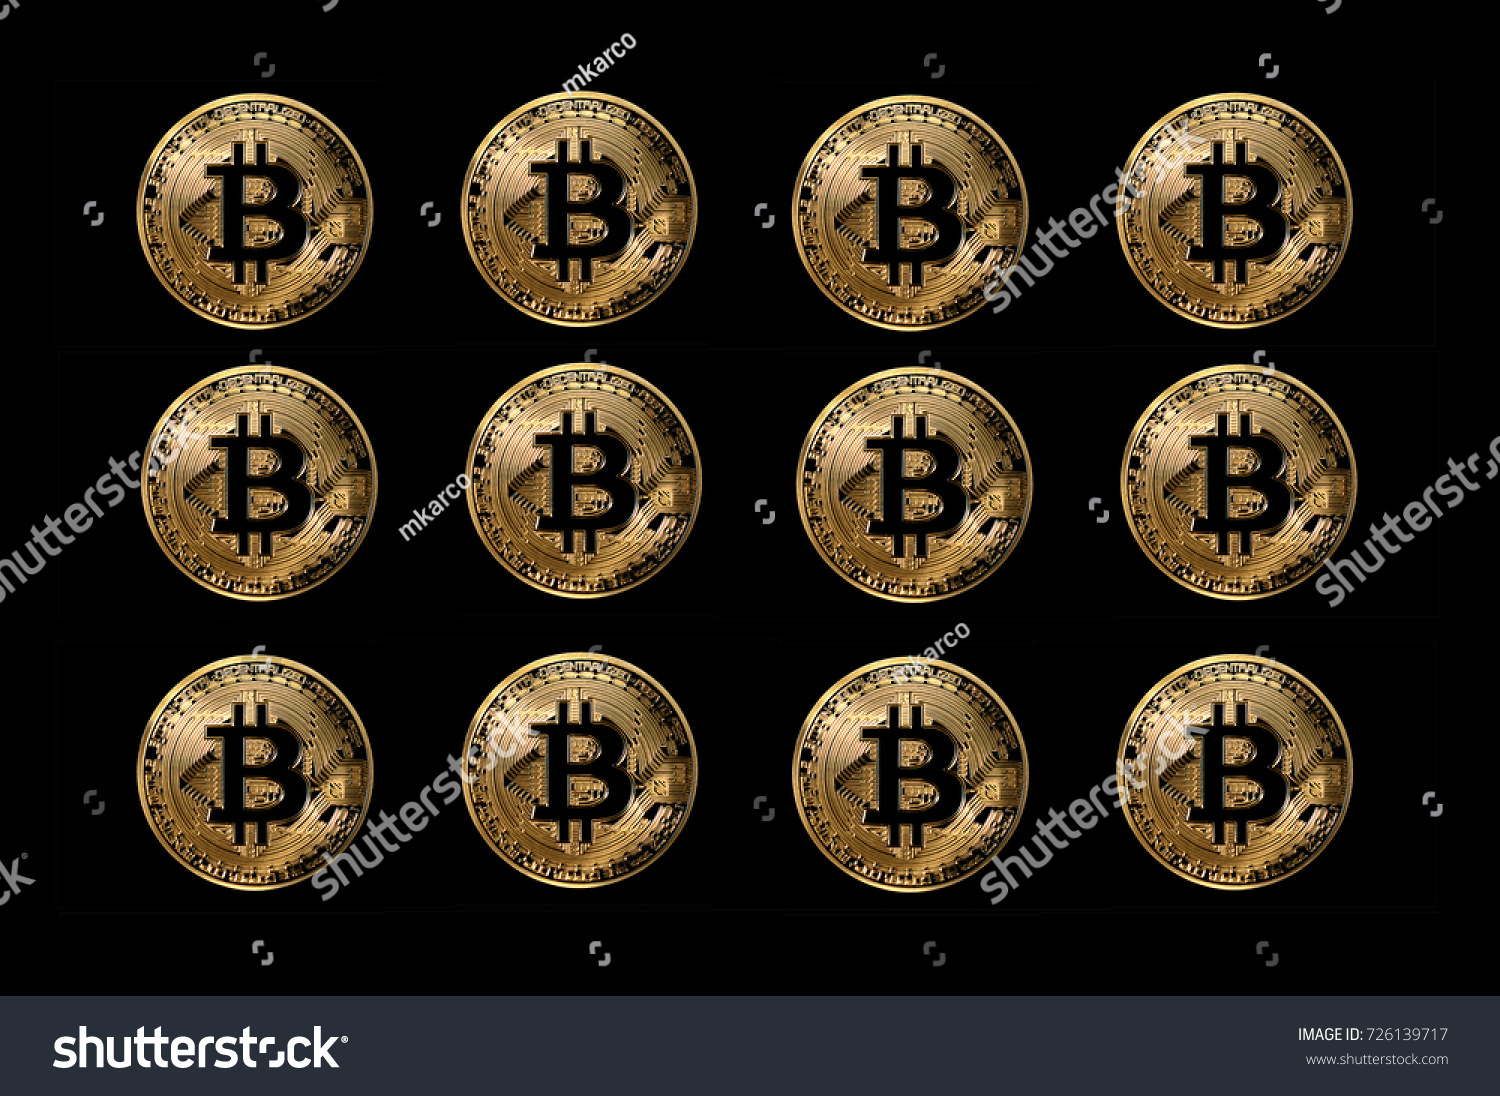 Set Of Bitcoin Coins Digital Currency Created For Use In Peer To Online Anonymous